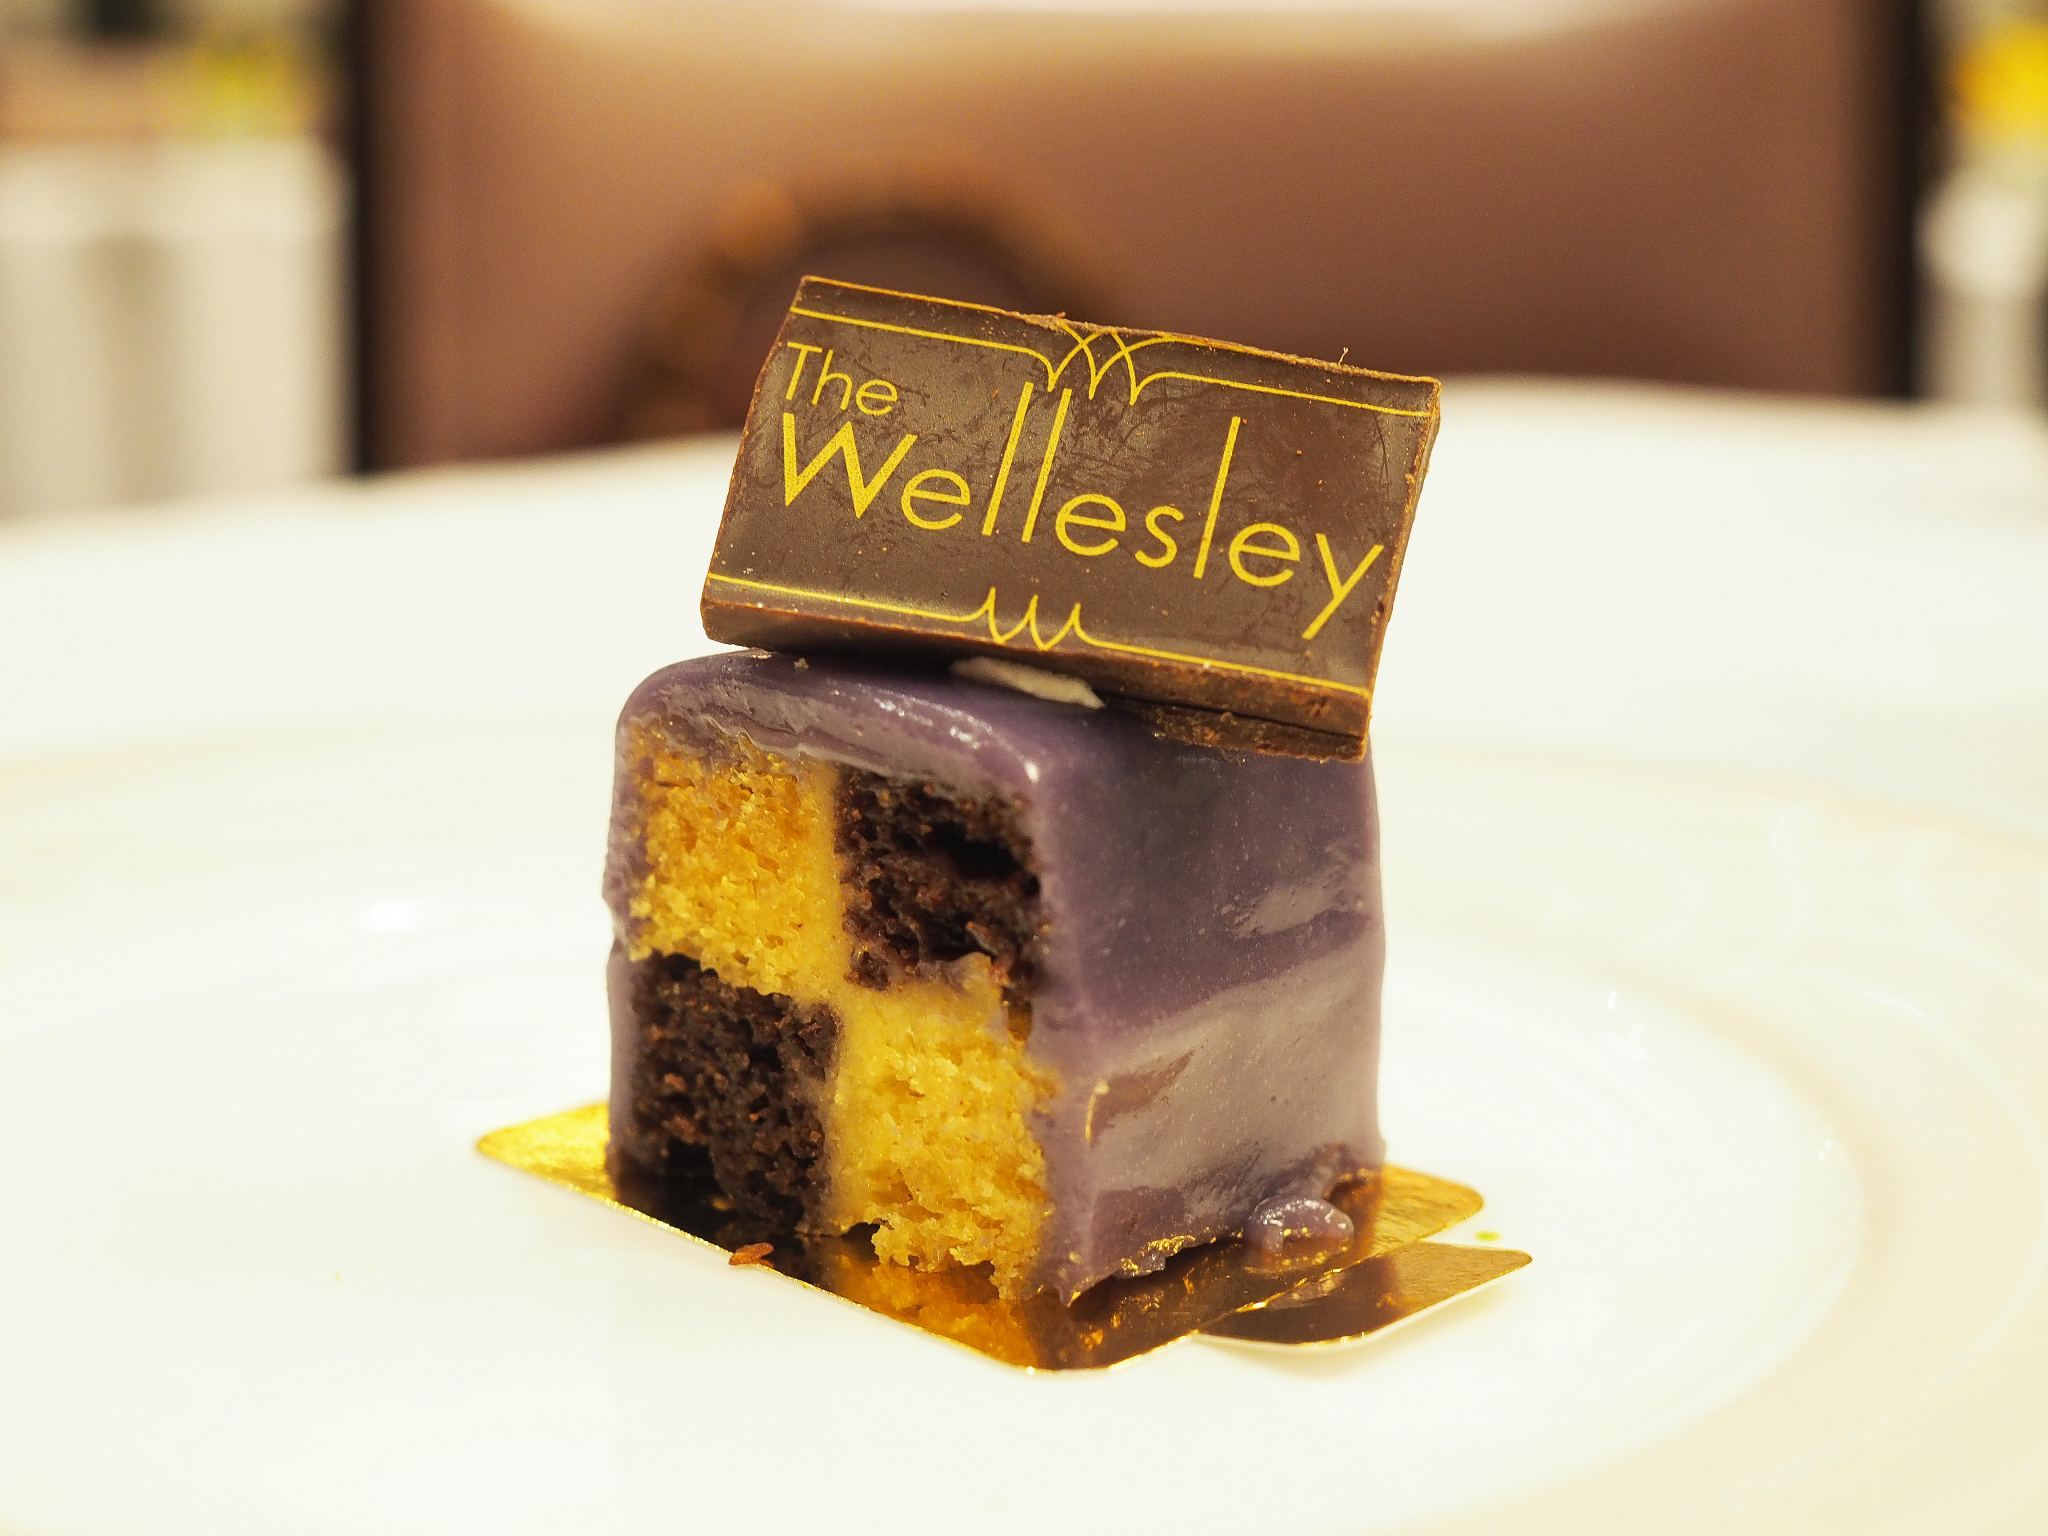 The Wellesley - Churchill Afternoon Tea